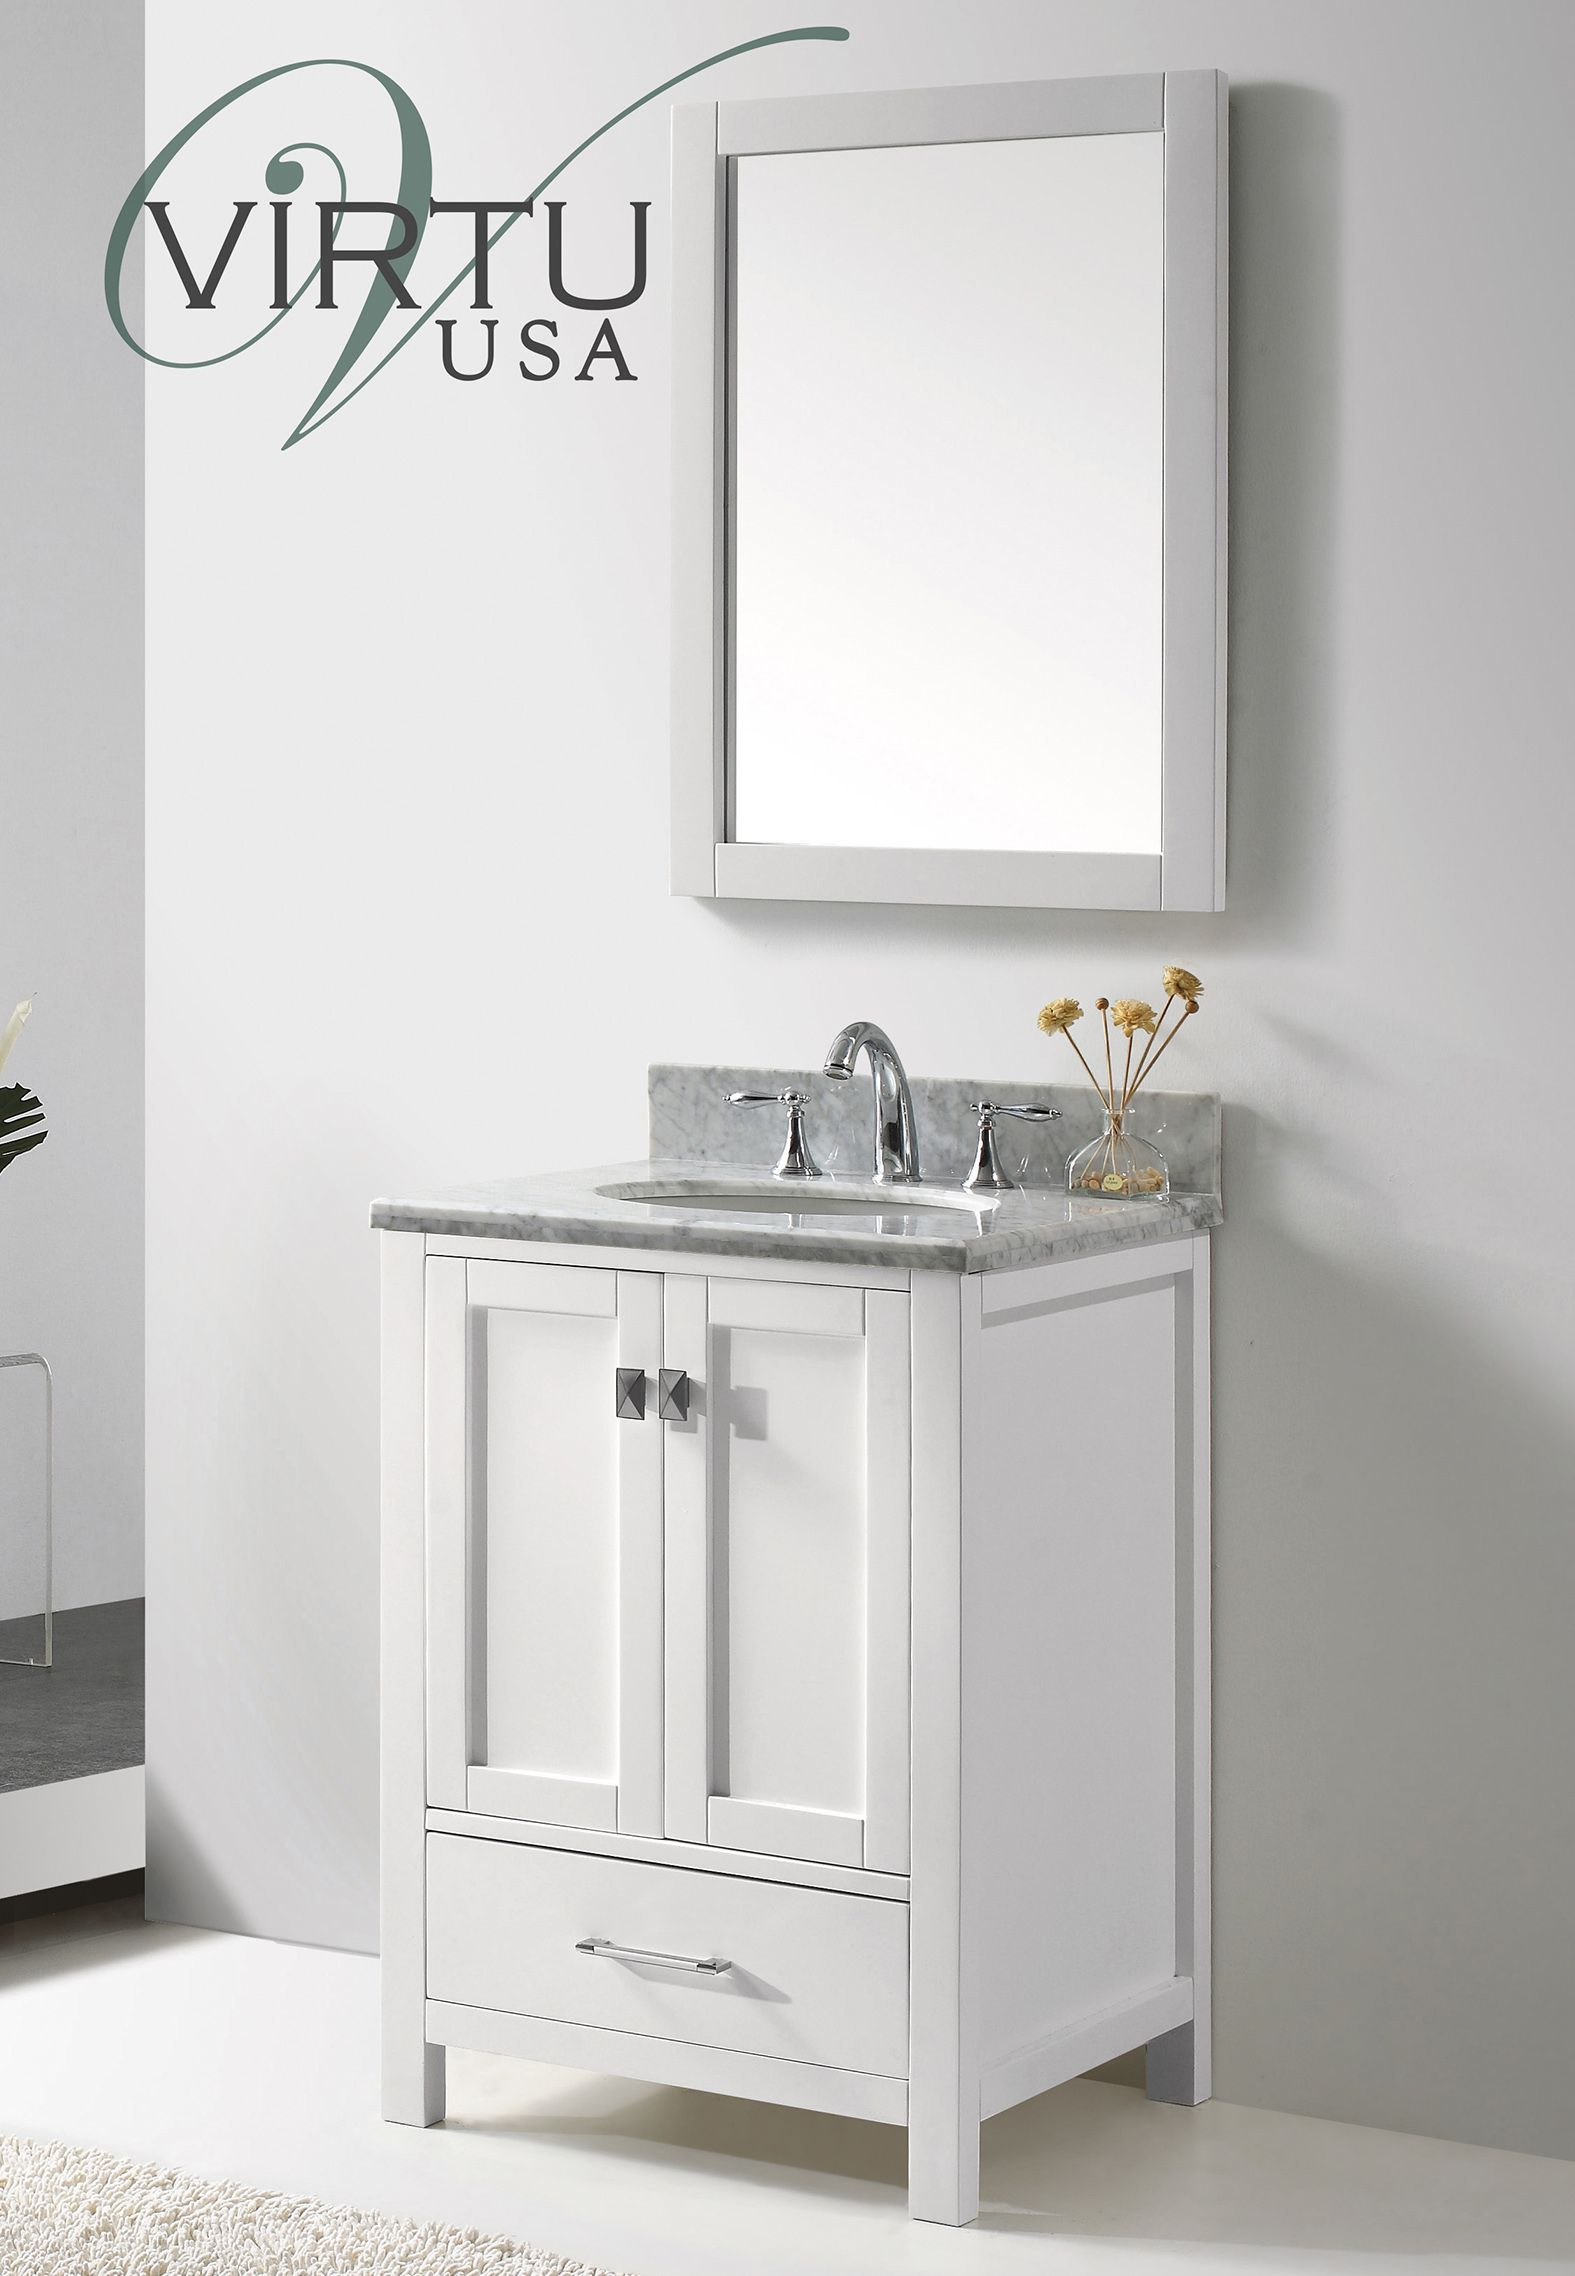 24 inch transitional bathroom vanity white finish set (with